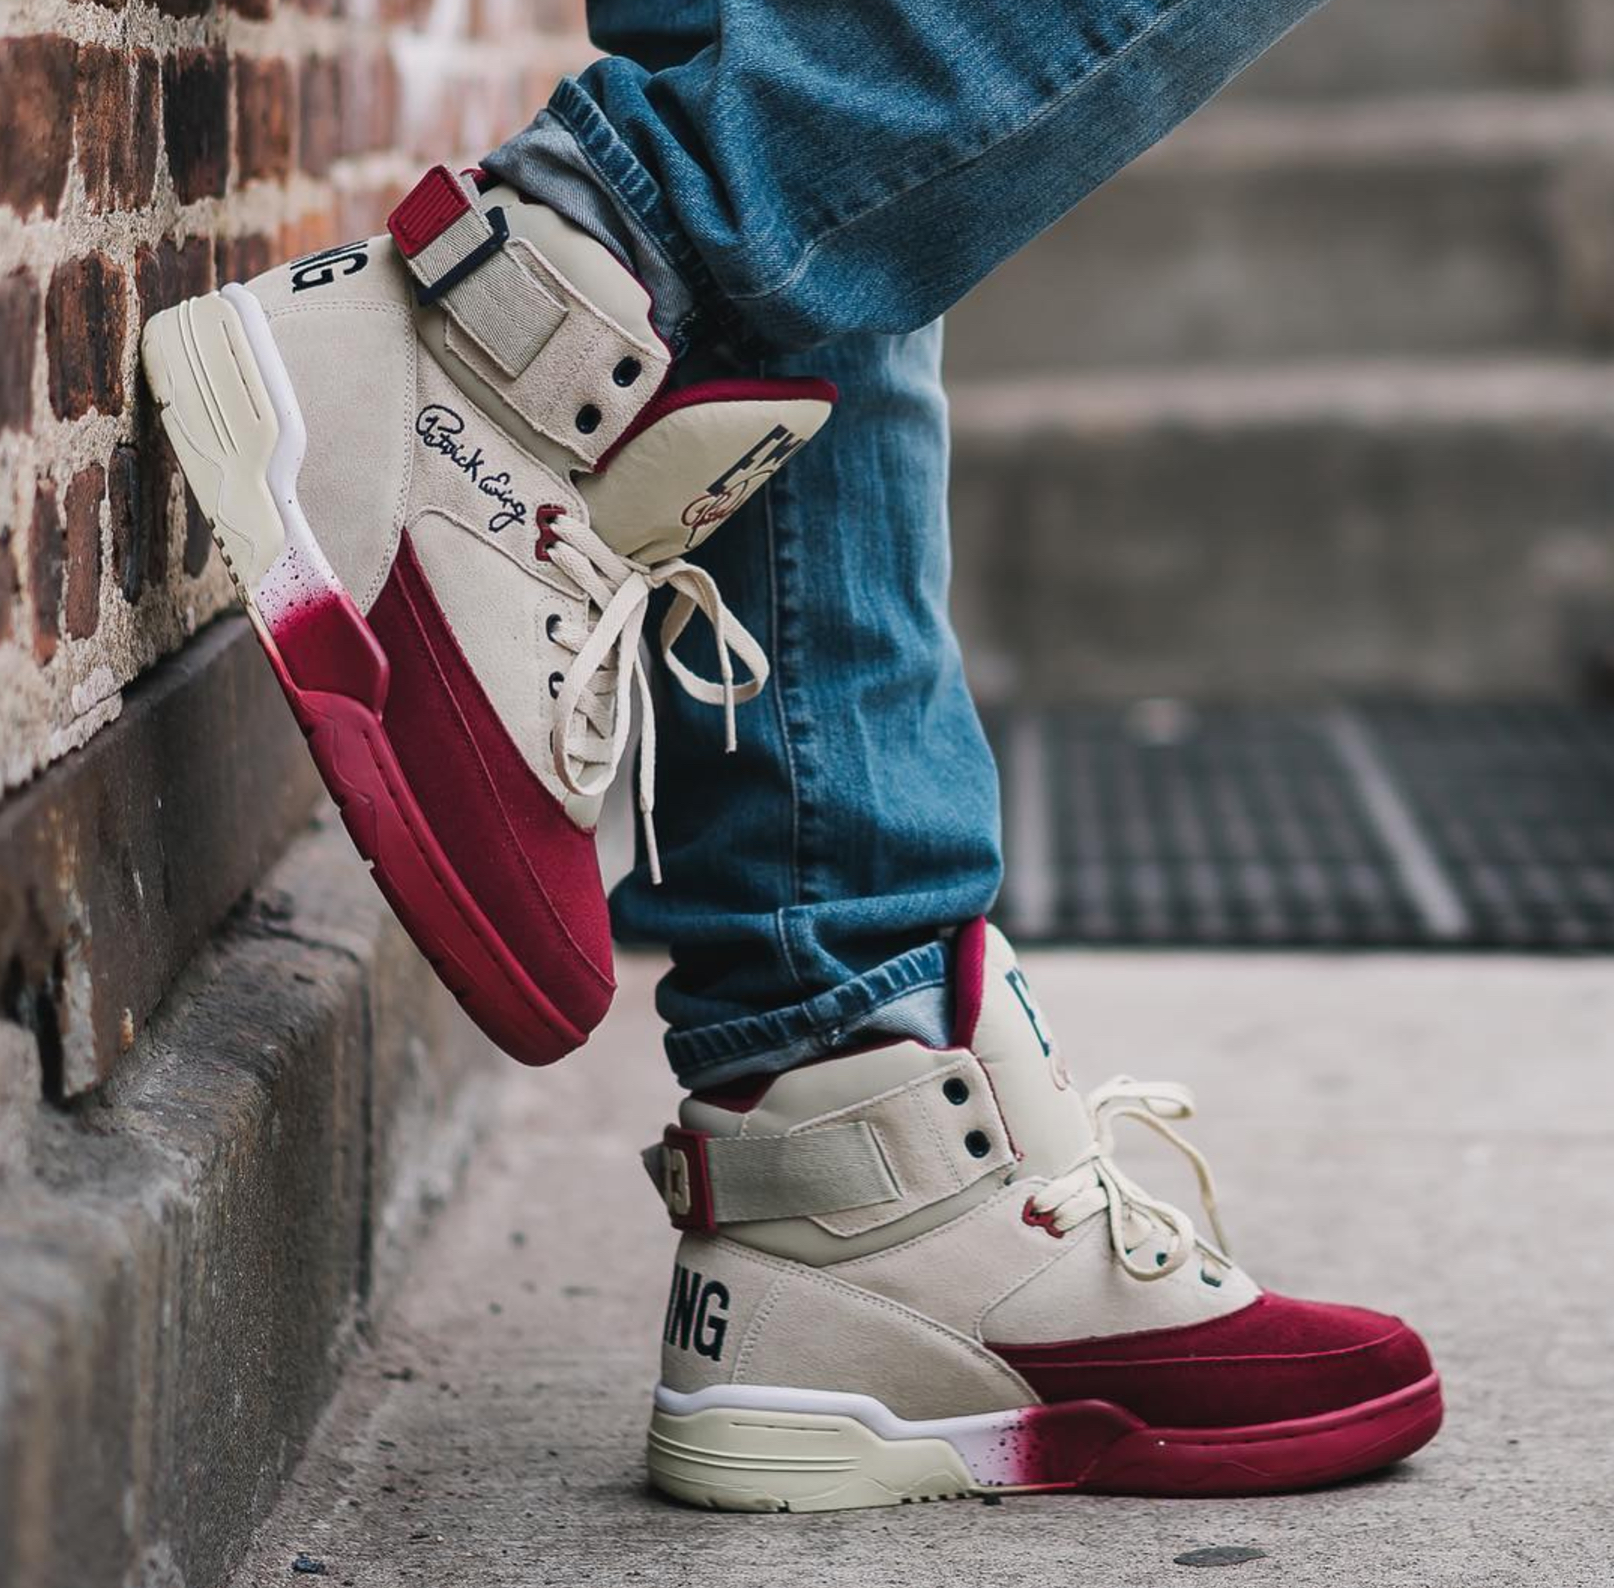 ewing 33 hi cream suede burgundy toe may retro collection 3